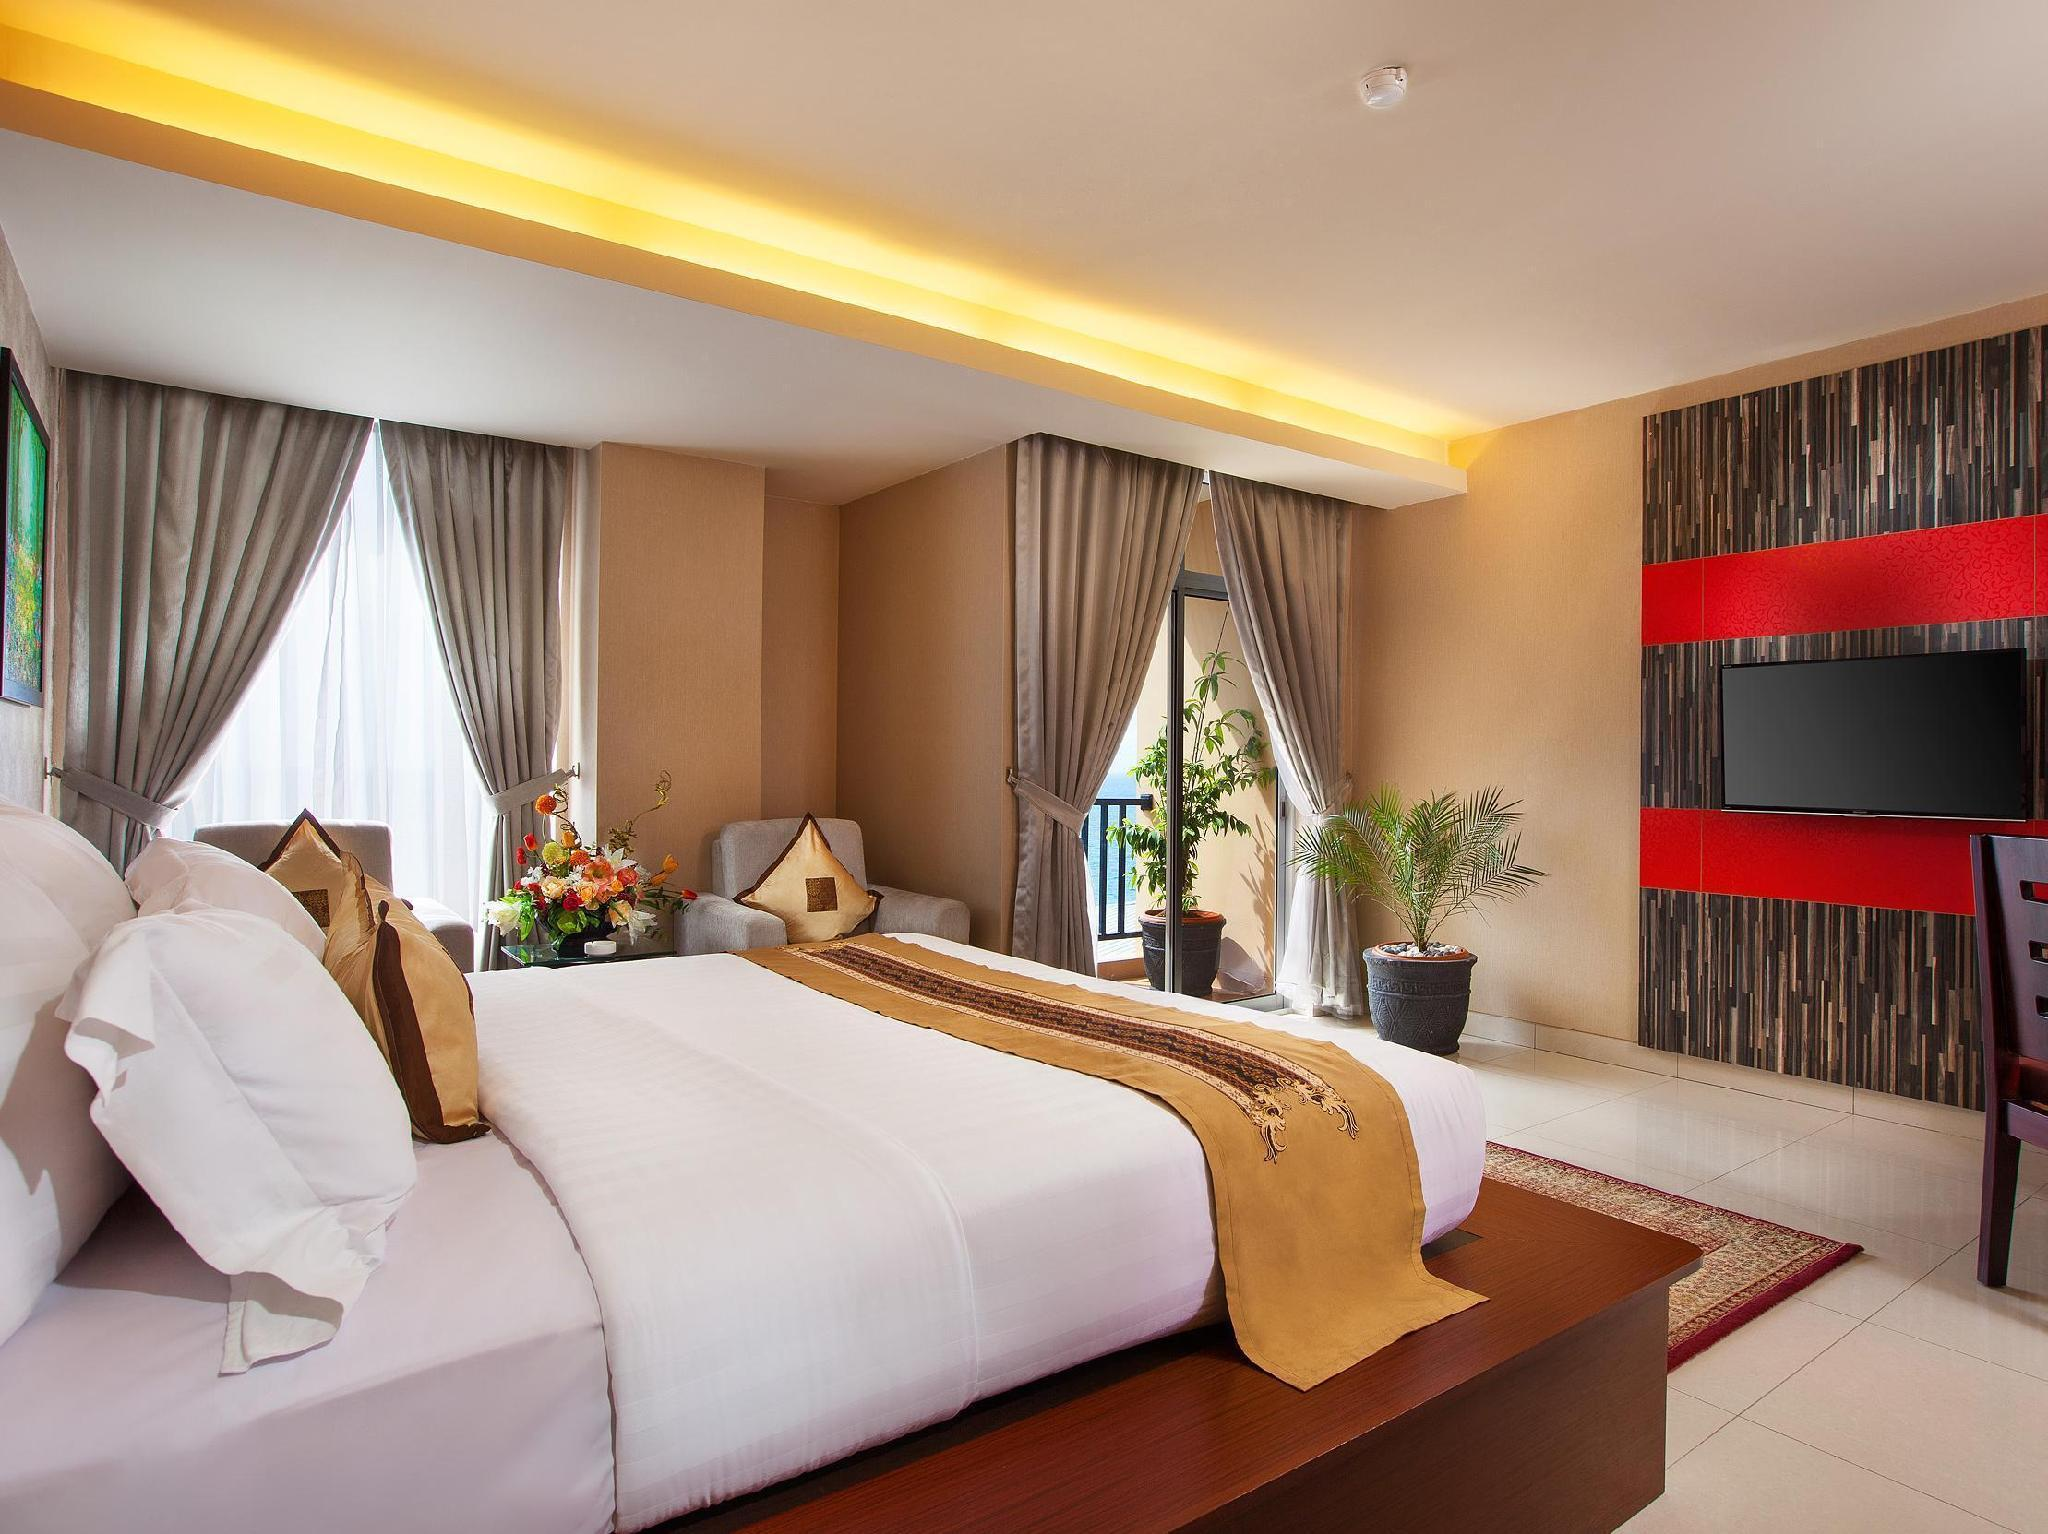 Deluxe Double Pemandangan Laut (Deluxe Sea View Double)